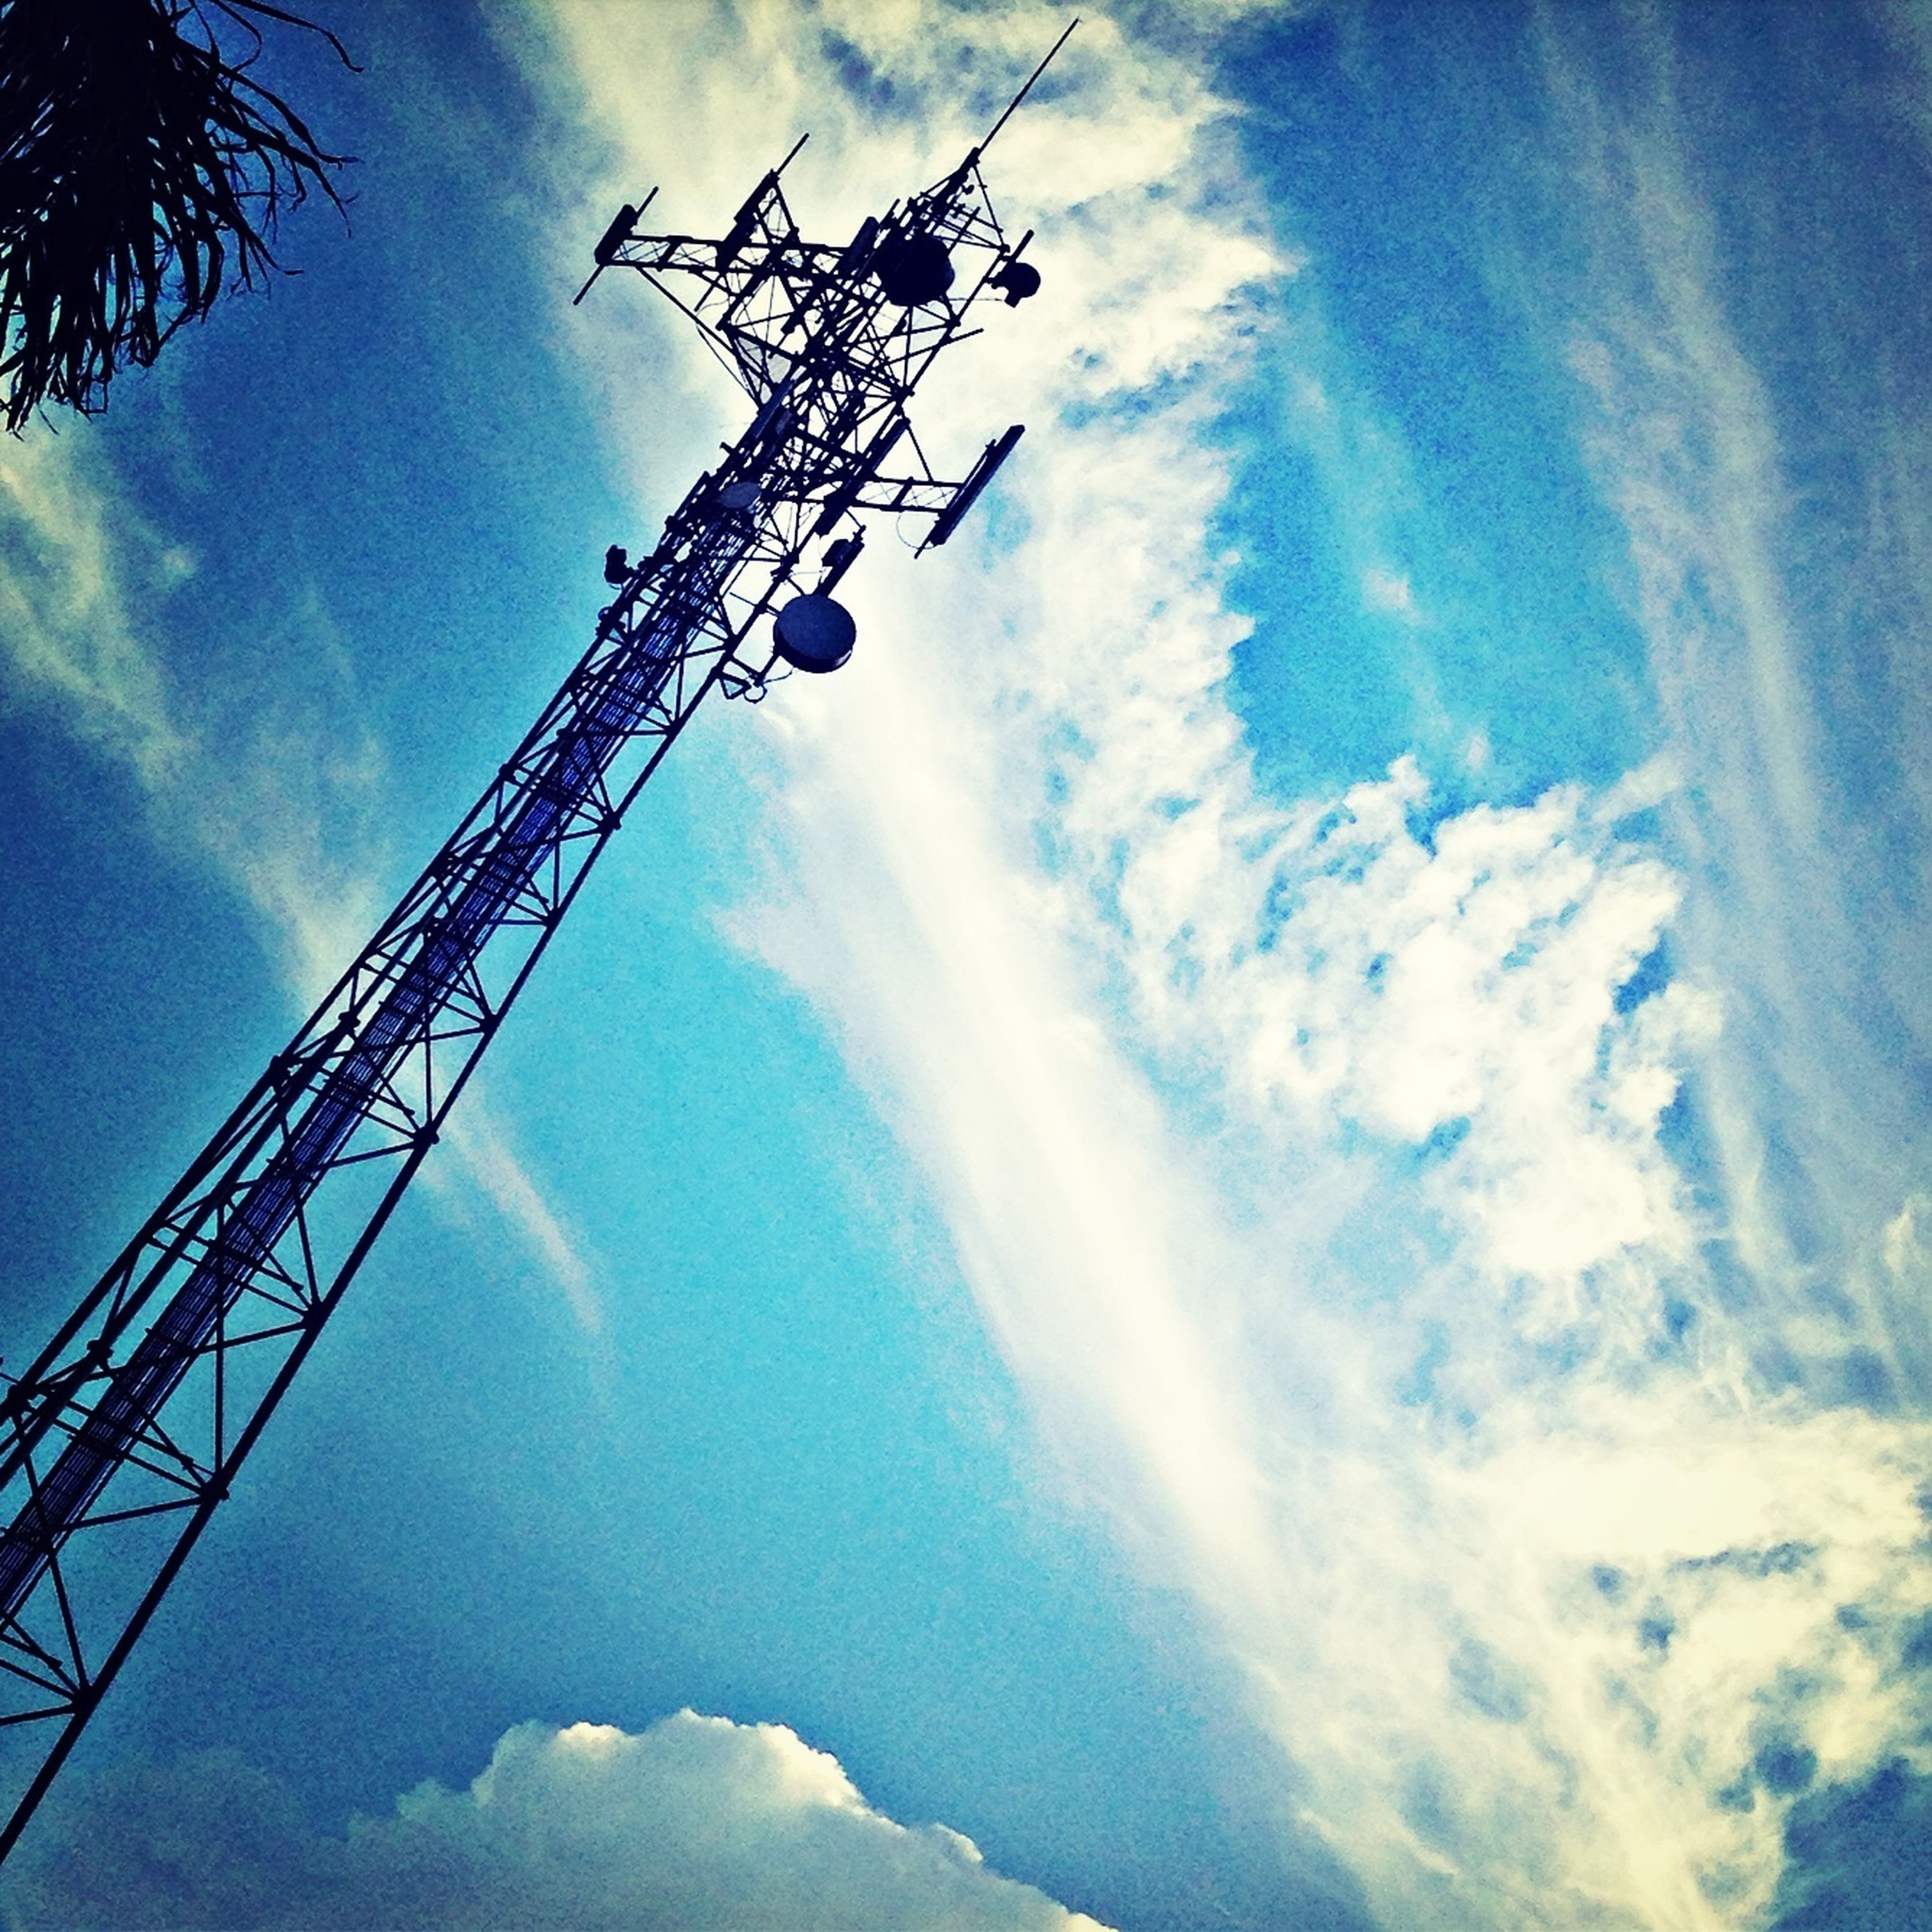 low angle view, sky, cloud - sky, blue, cloudy, cloud, vapor trail, sunbeam, day, nature, technology, sunlight, outdoors, no people, tall - high, electricity, fuel and power generation, beauty in nature, weather, silhouette